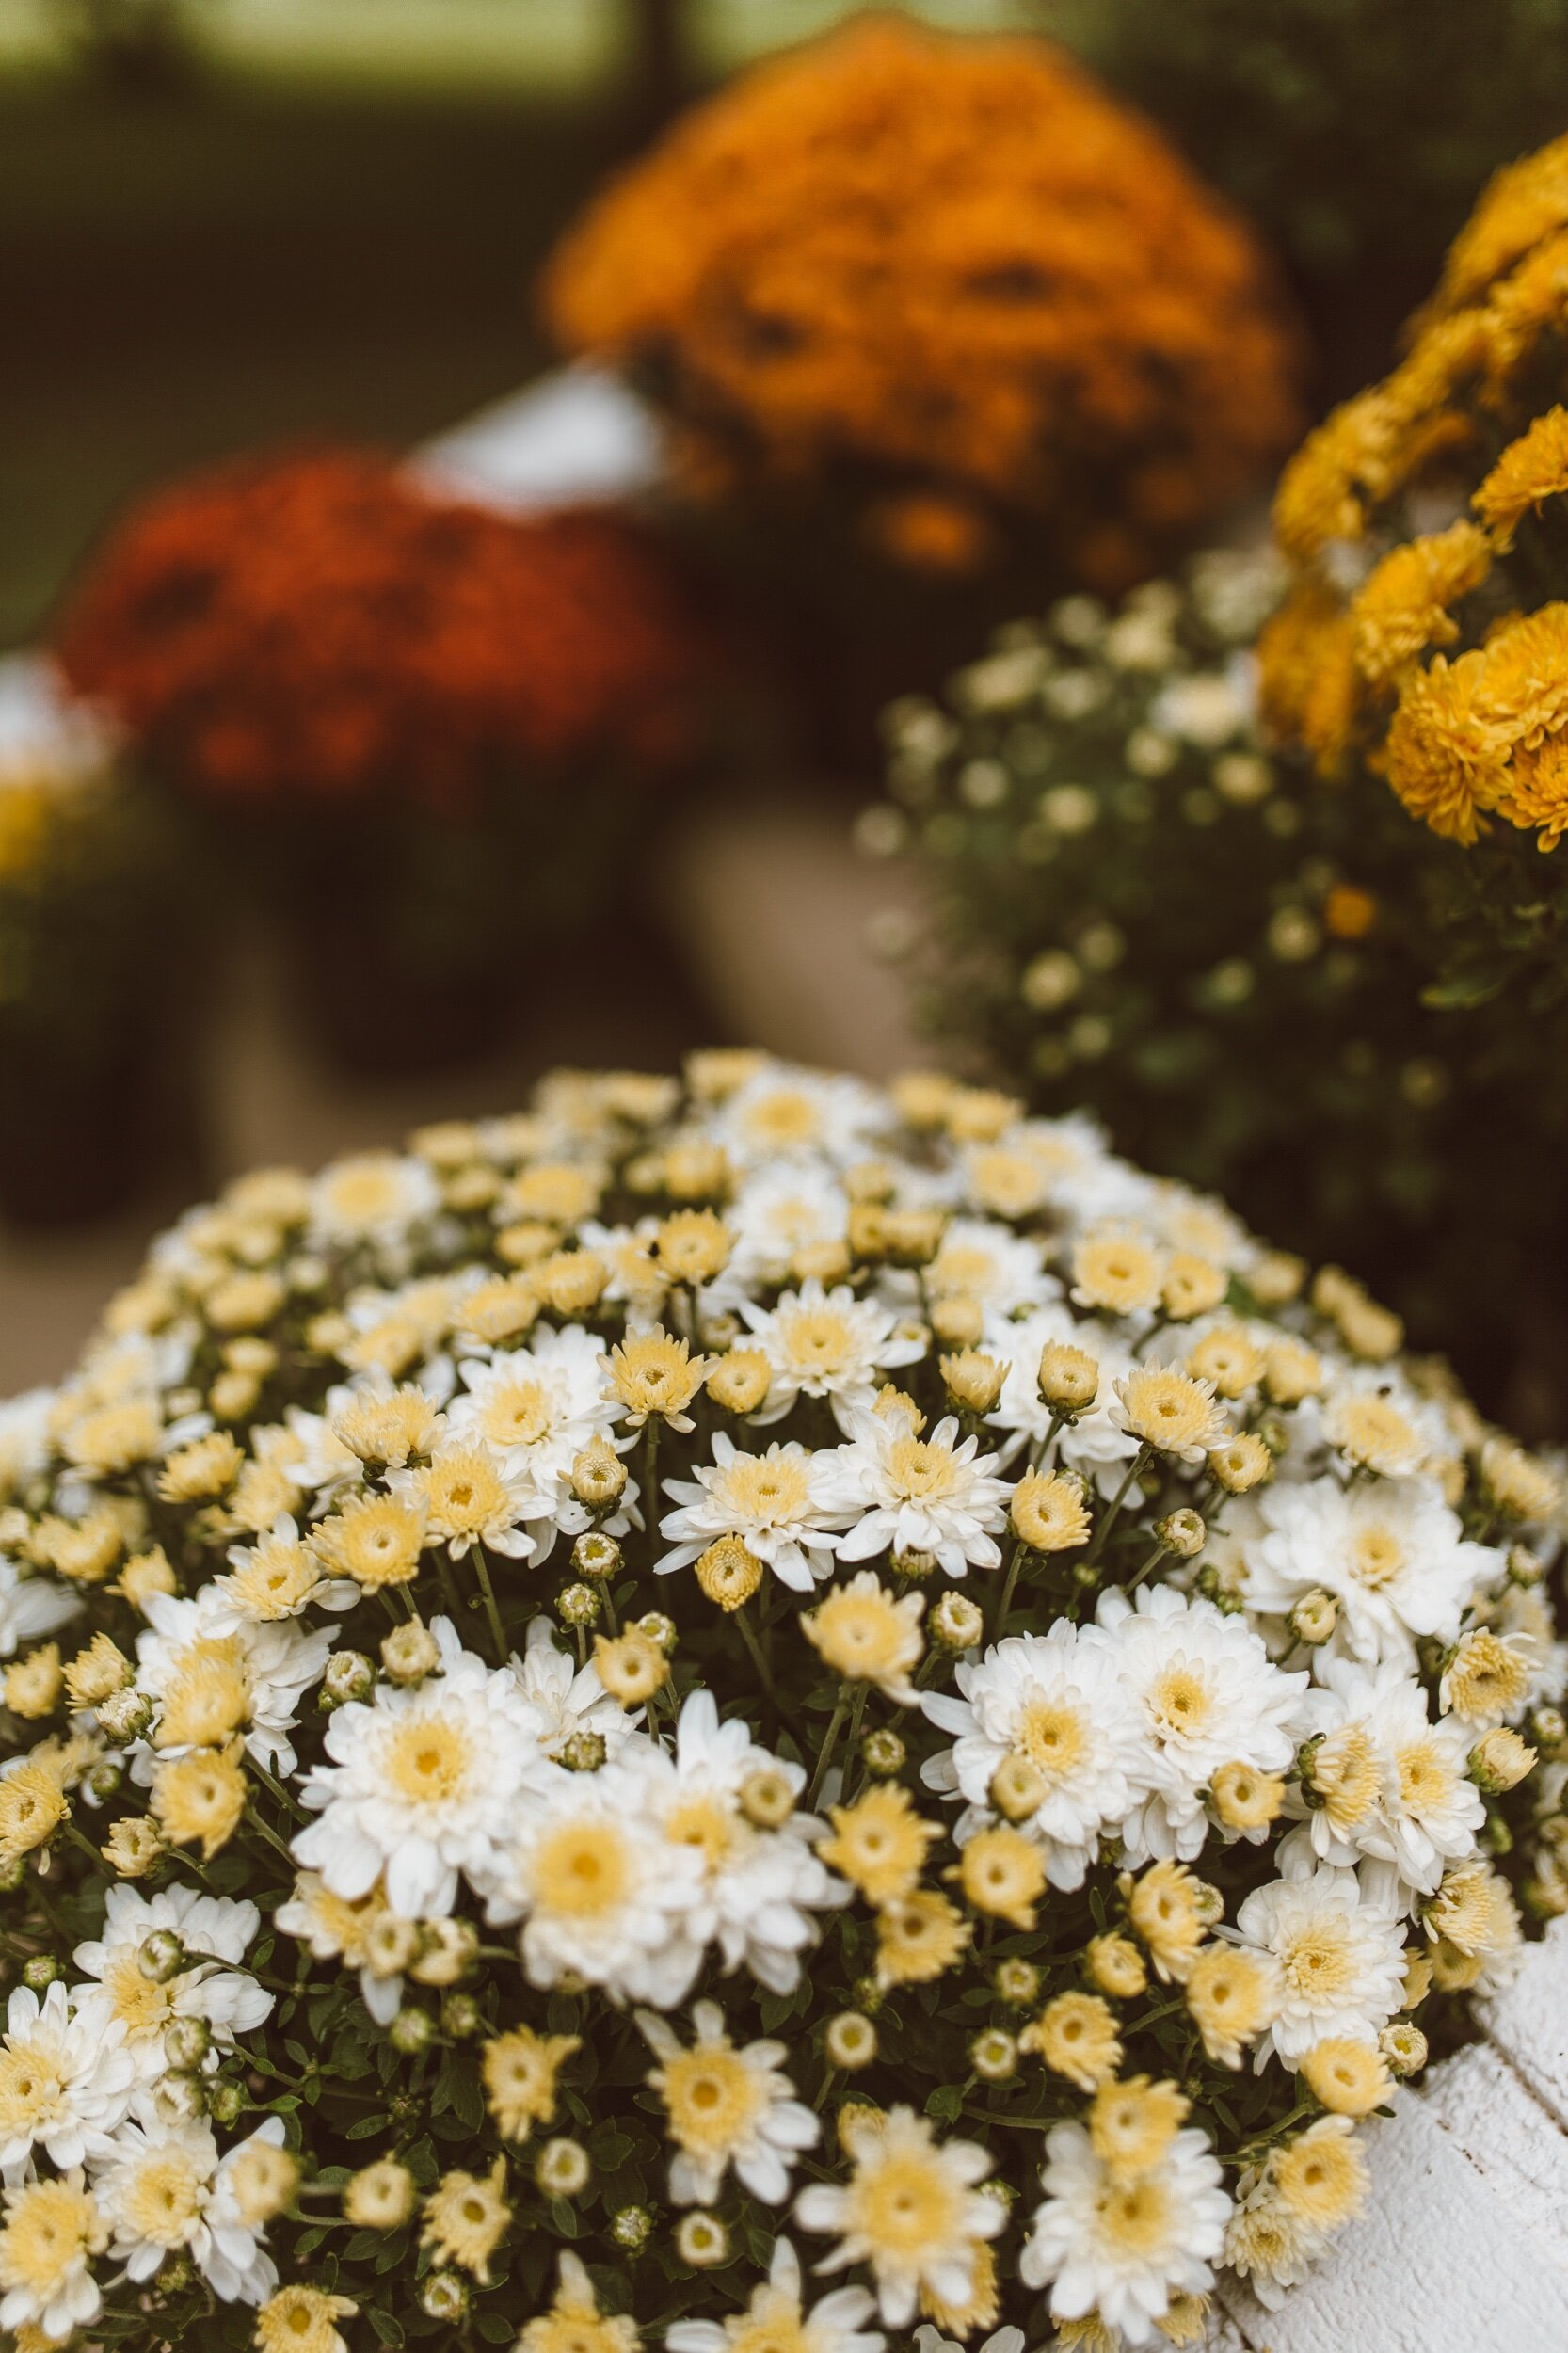 forthehome-how-to-care-for-fall-mums-03.jpeg